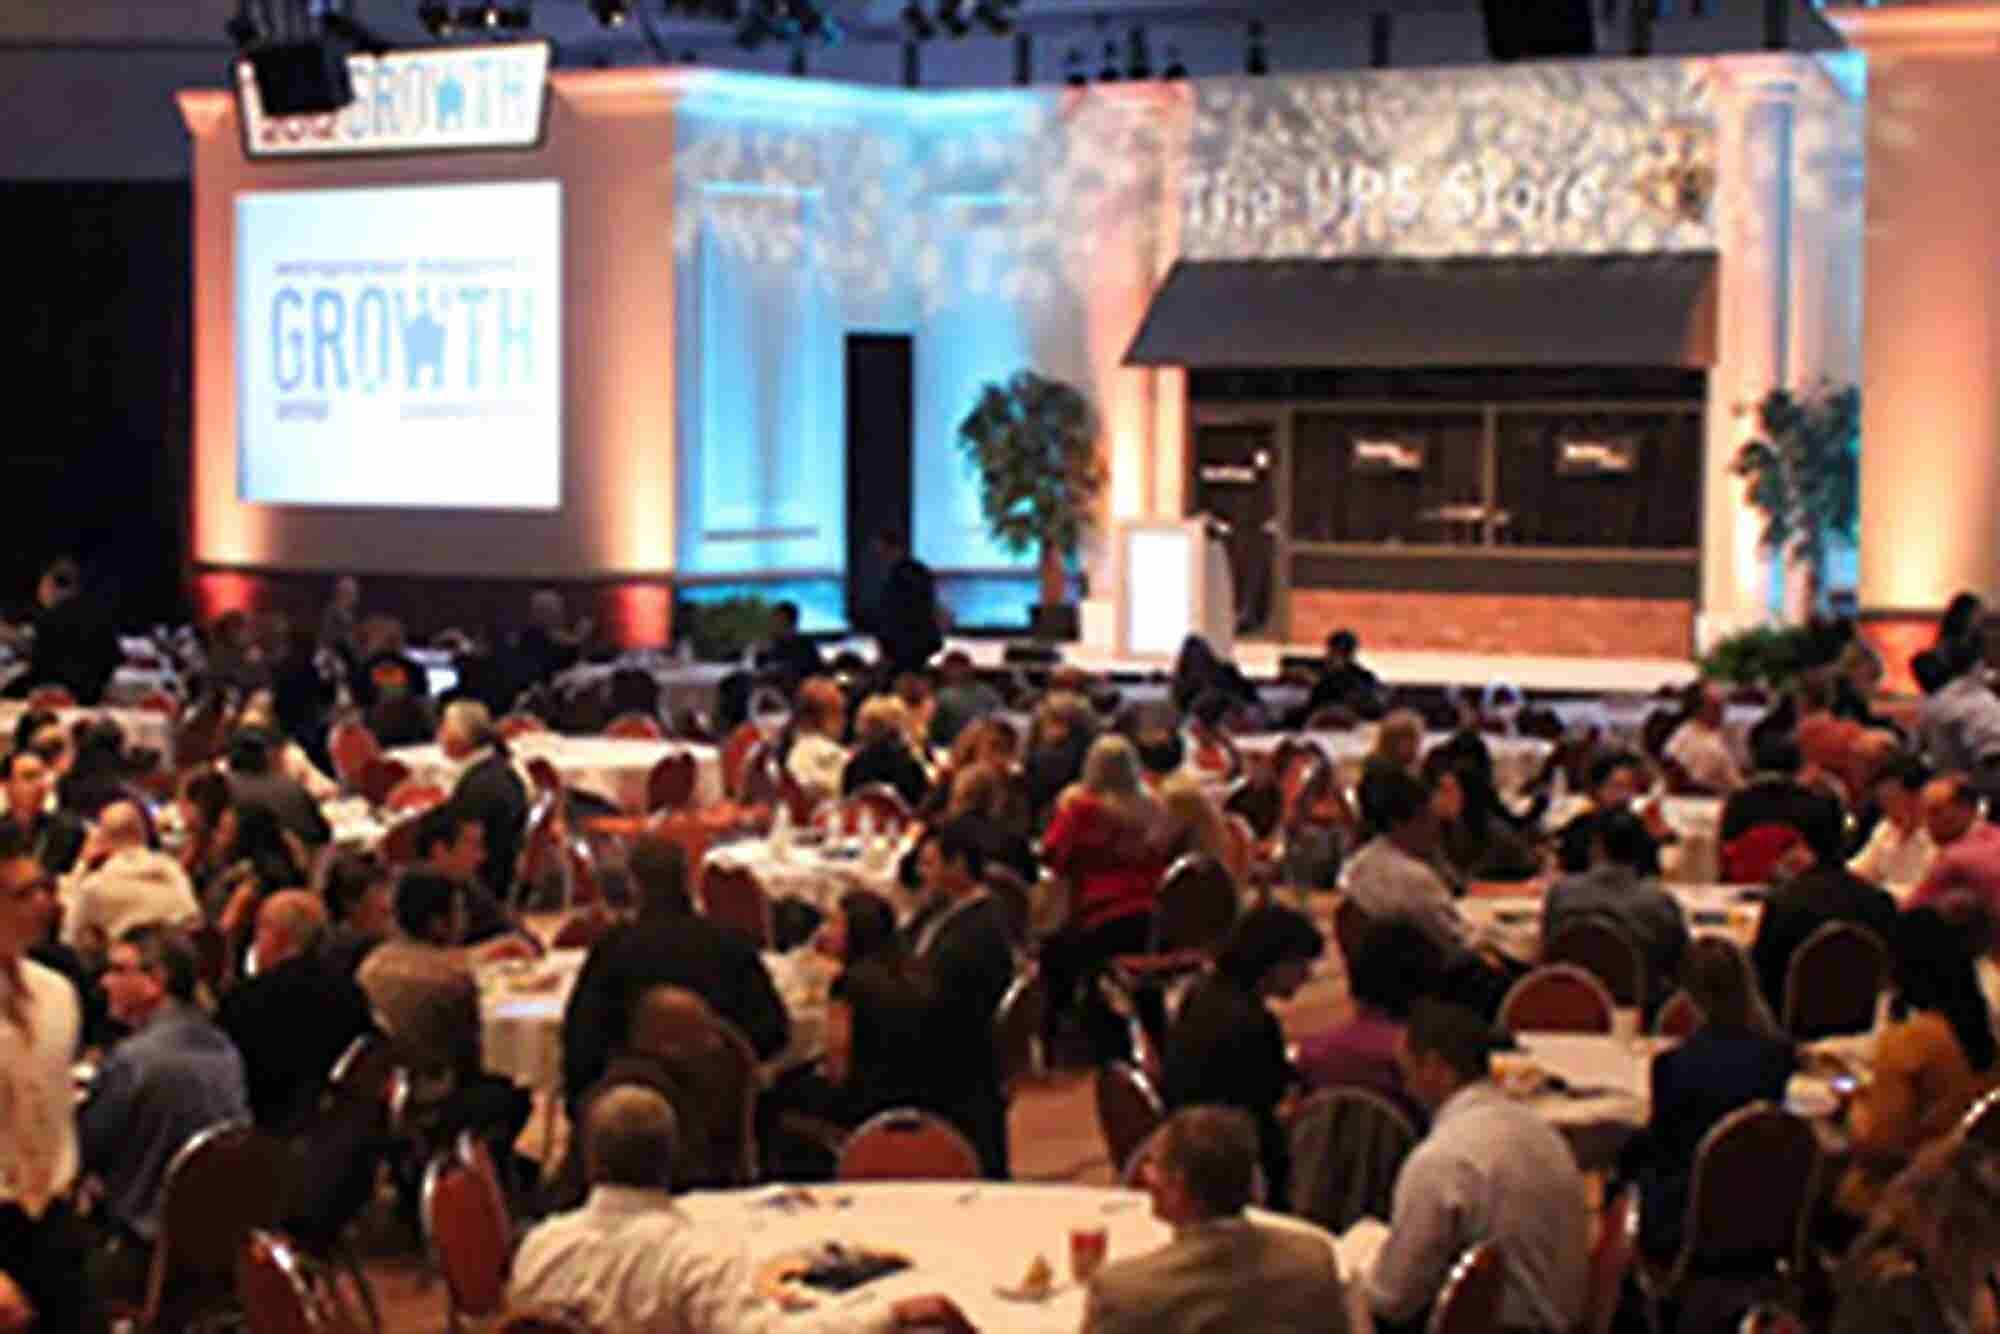 Highlights from Entrepreneur Magazine's Growth Conference 2012